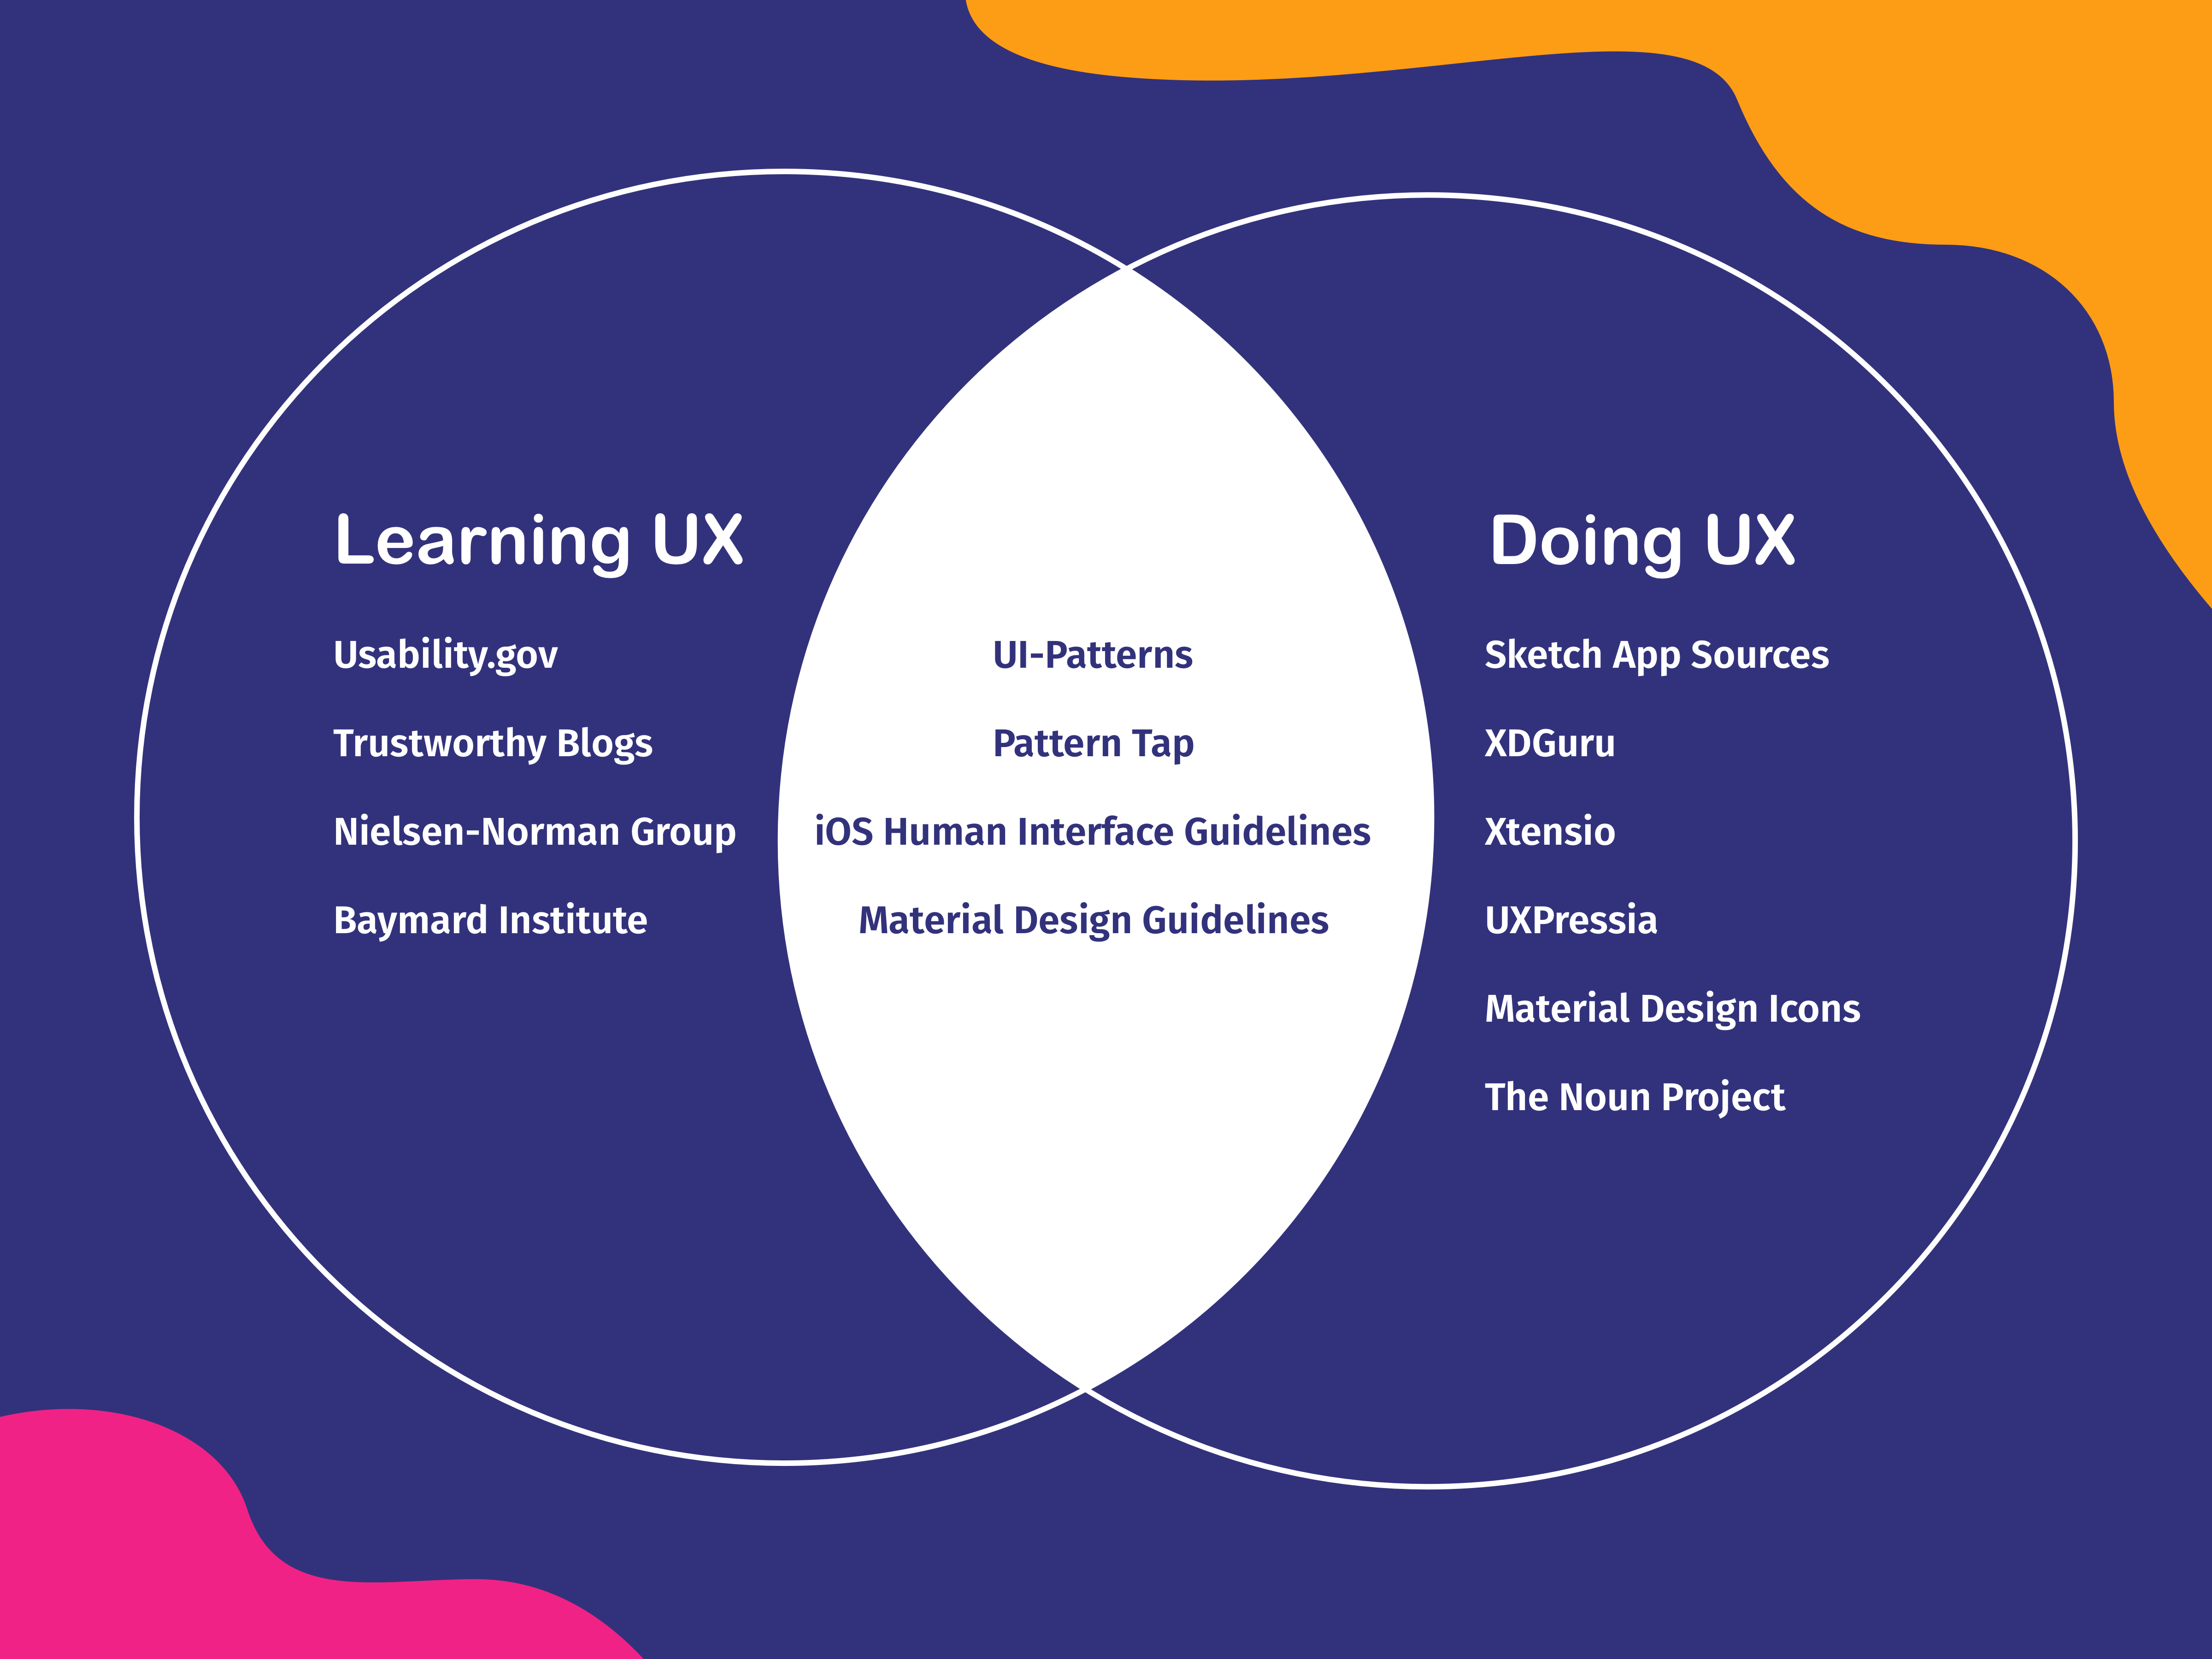 A Venn diagram depicting all the tools you need for learning and practicing UX design